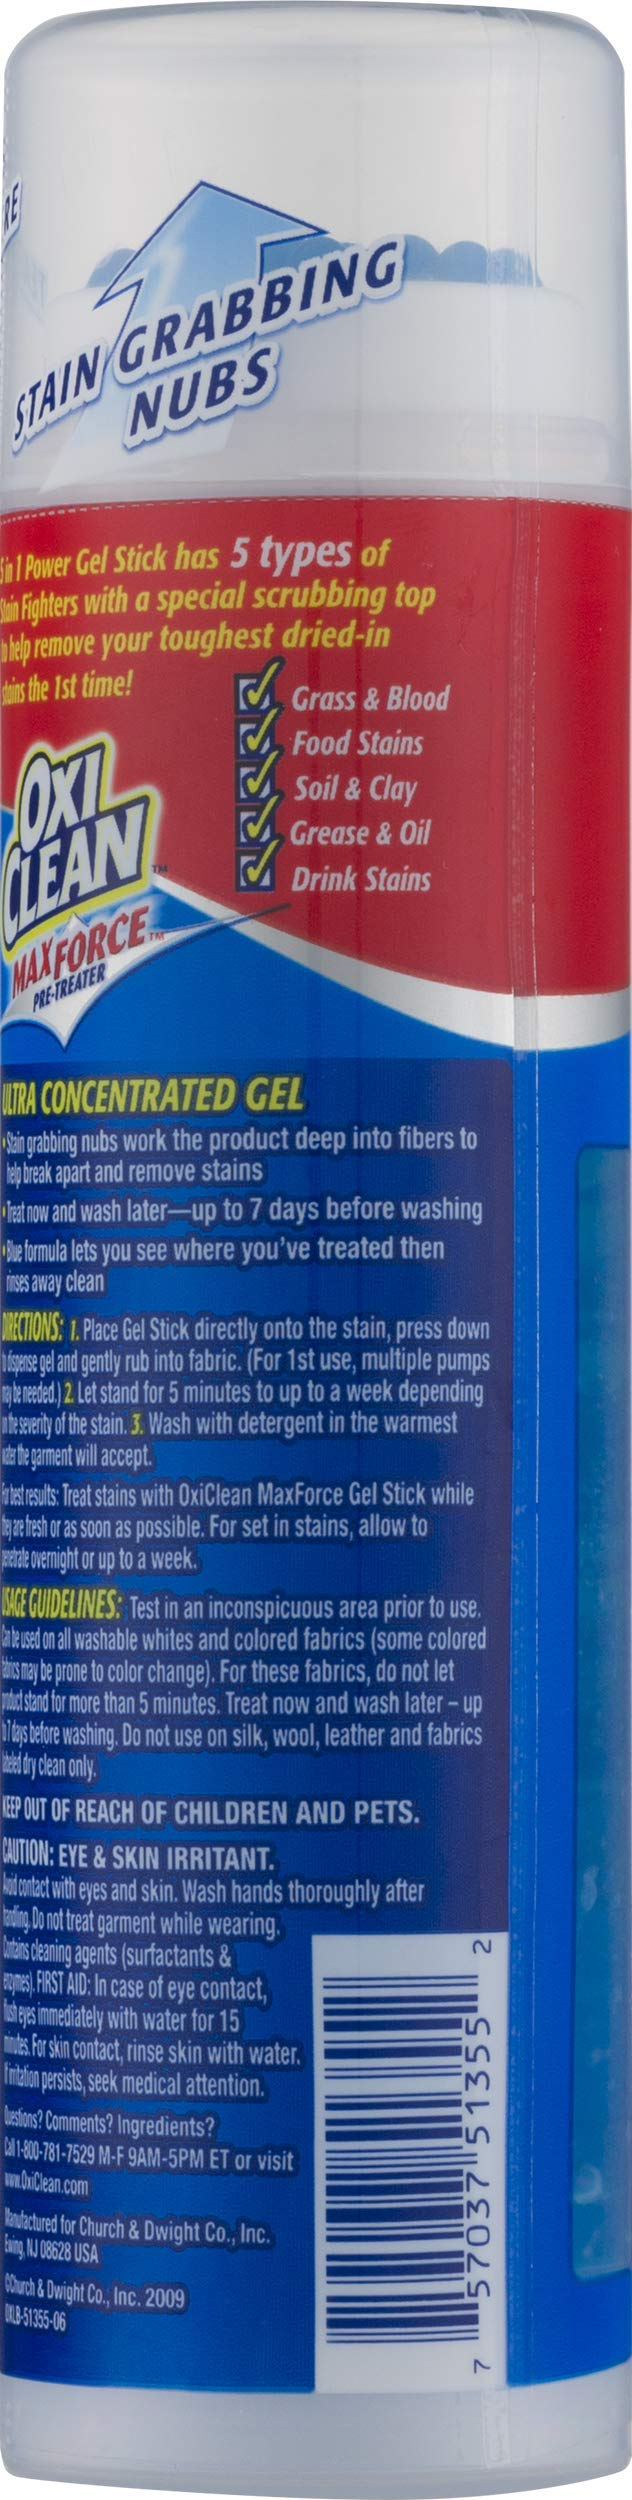 OxiClean Max Force Gel Stick, 6.2 Oz (Pack of 12) by OxiClean (Image #5)